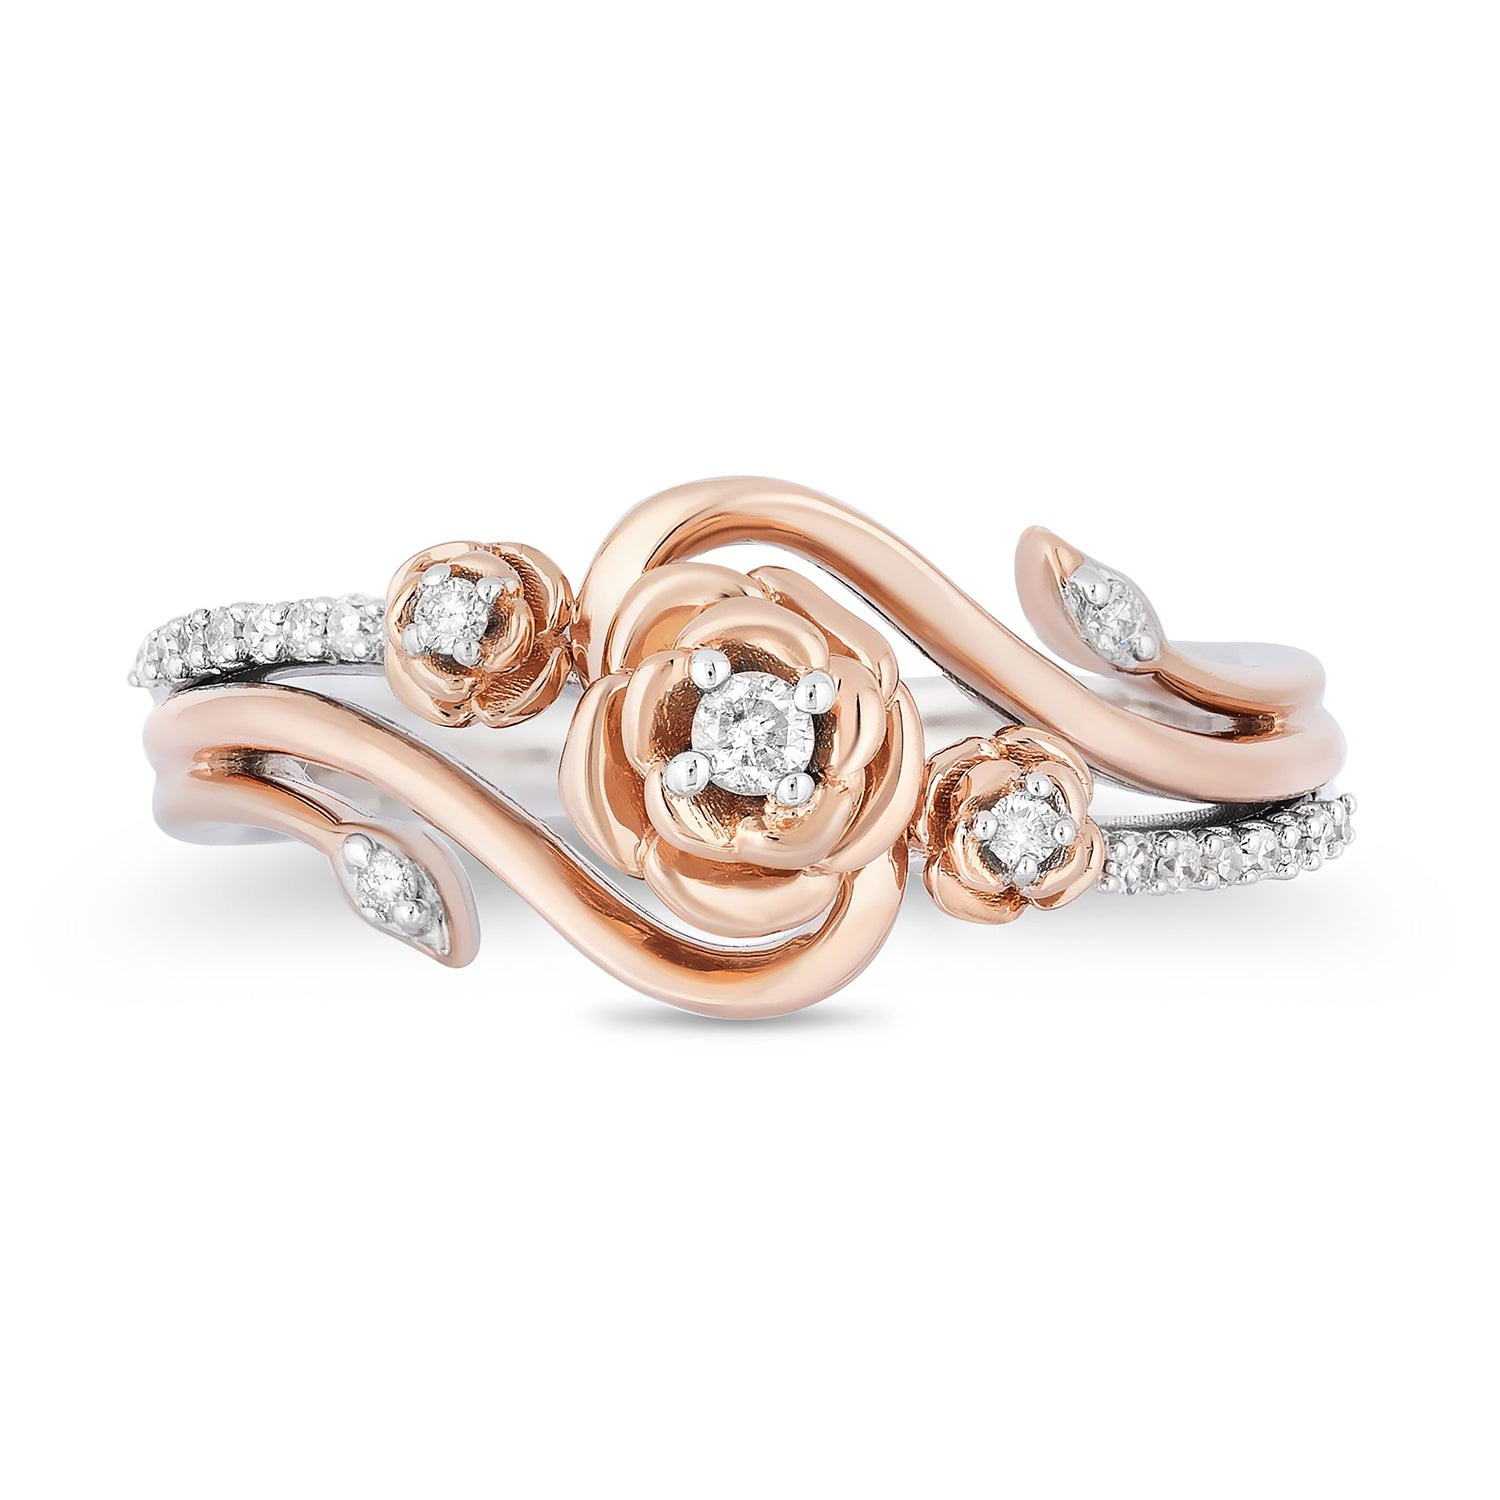 enchanted_disney-belle_rose_ring-rose_gold_and_sterling_silver_1/6CTTW_2